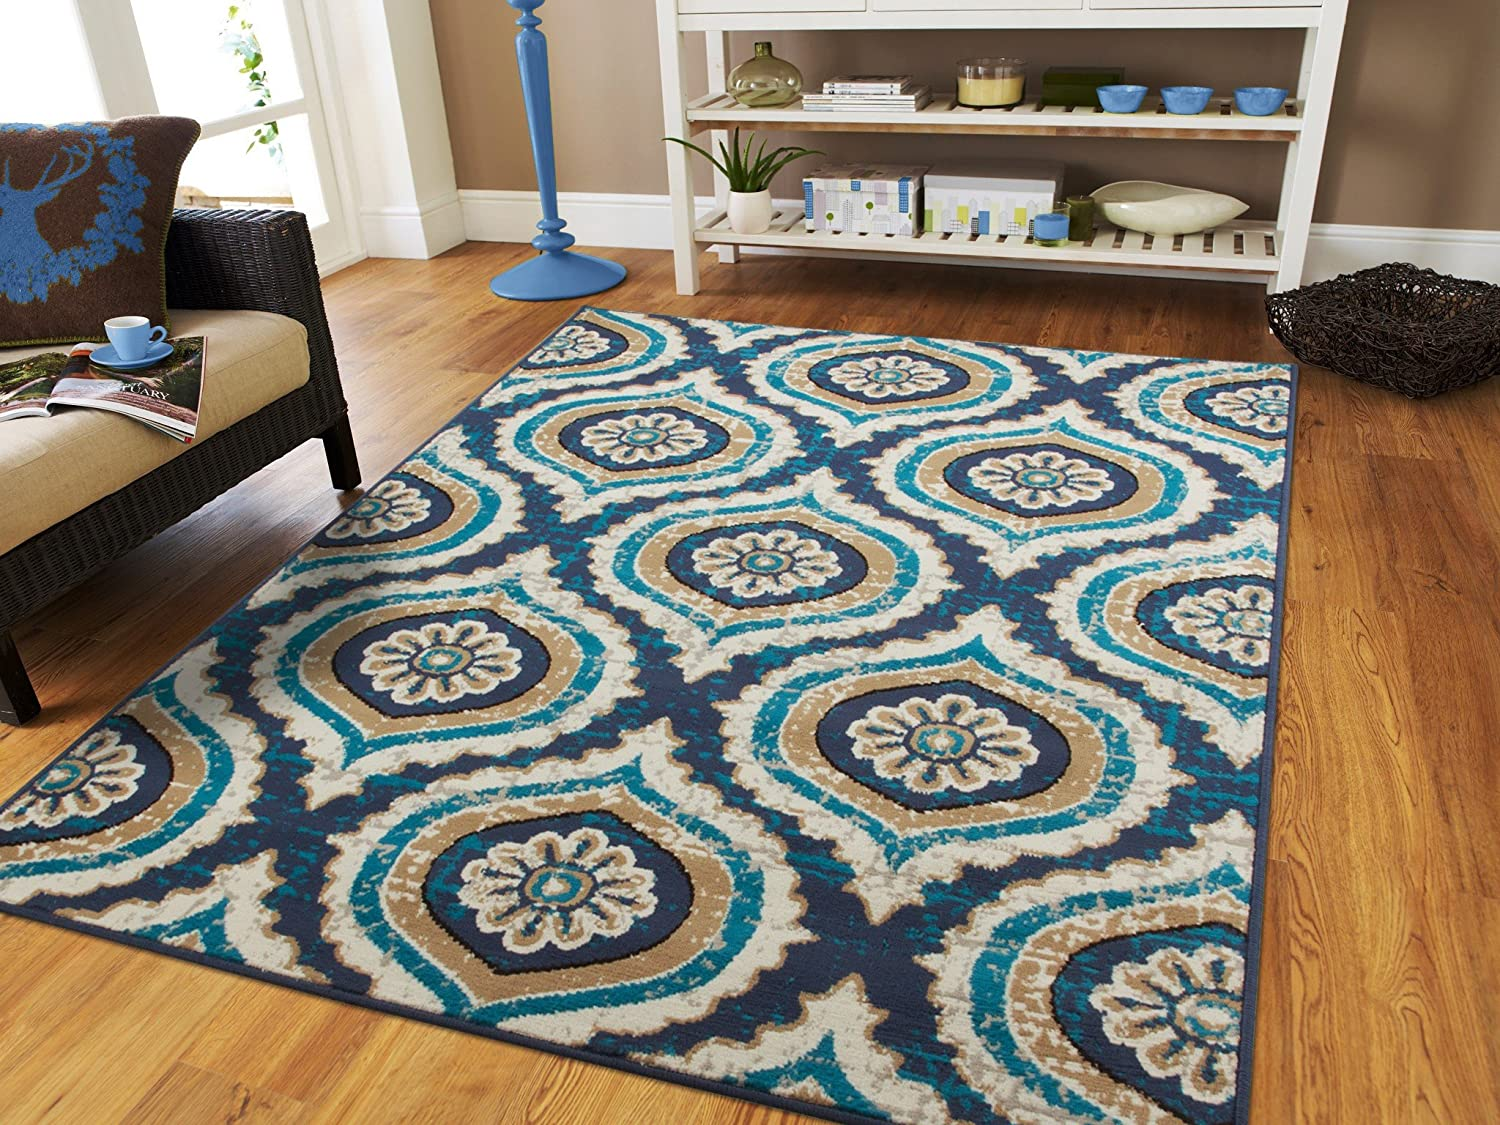 Amazon.com: New Small Rug For Living Room and Kitchen 2x3 Rugs with ...